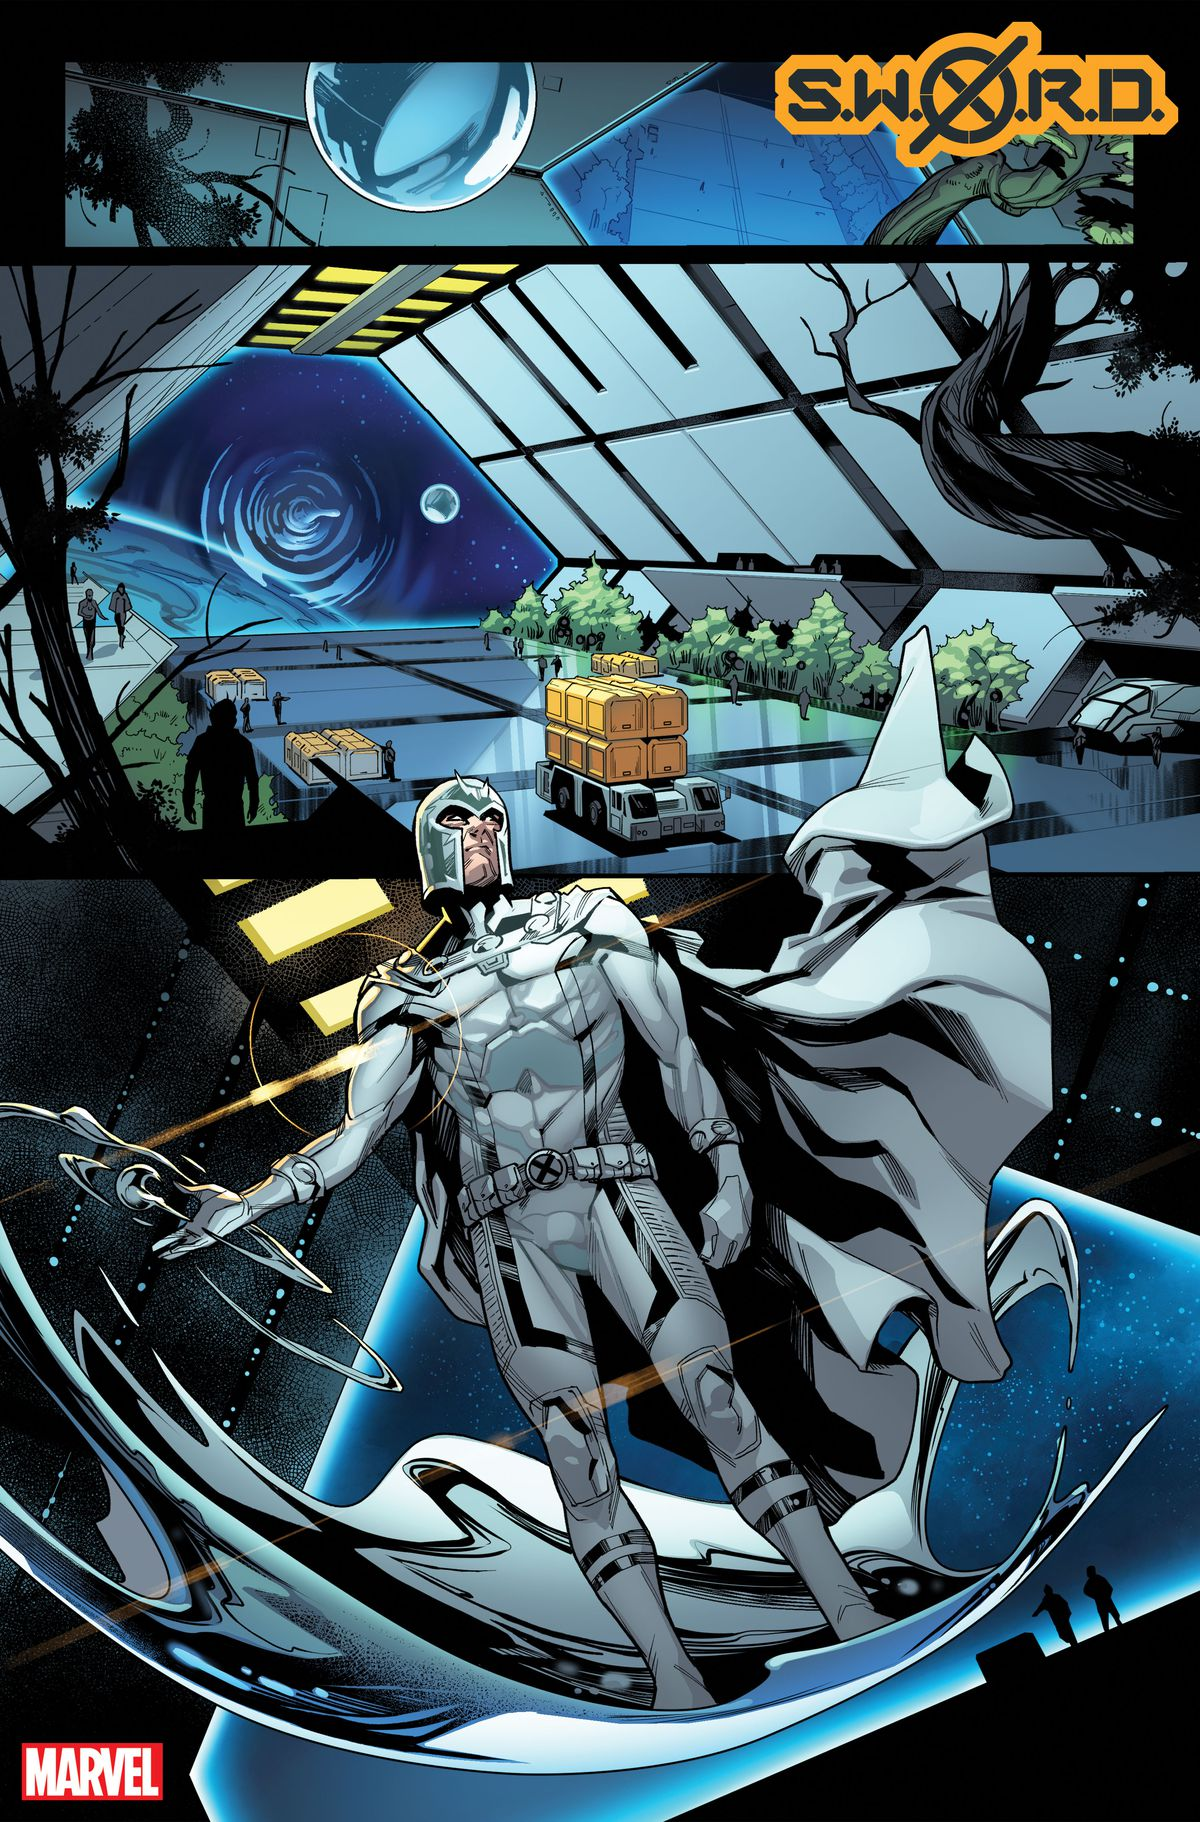 Magneto arrives on the SWORD station in an unfinished page from SWORD #1, Marvel Comics (2020).